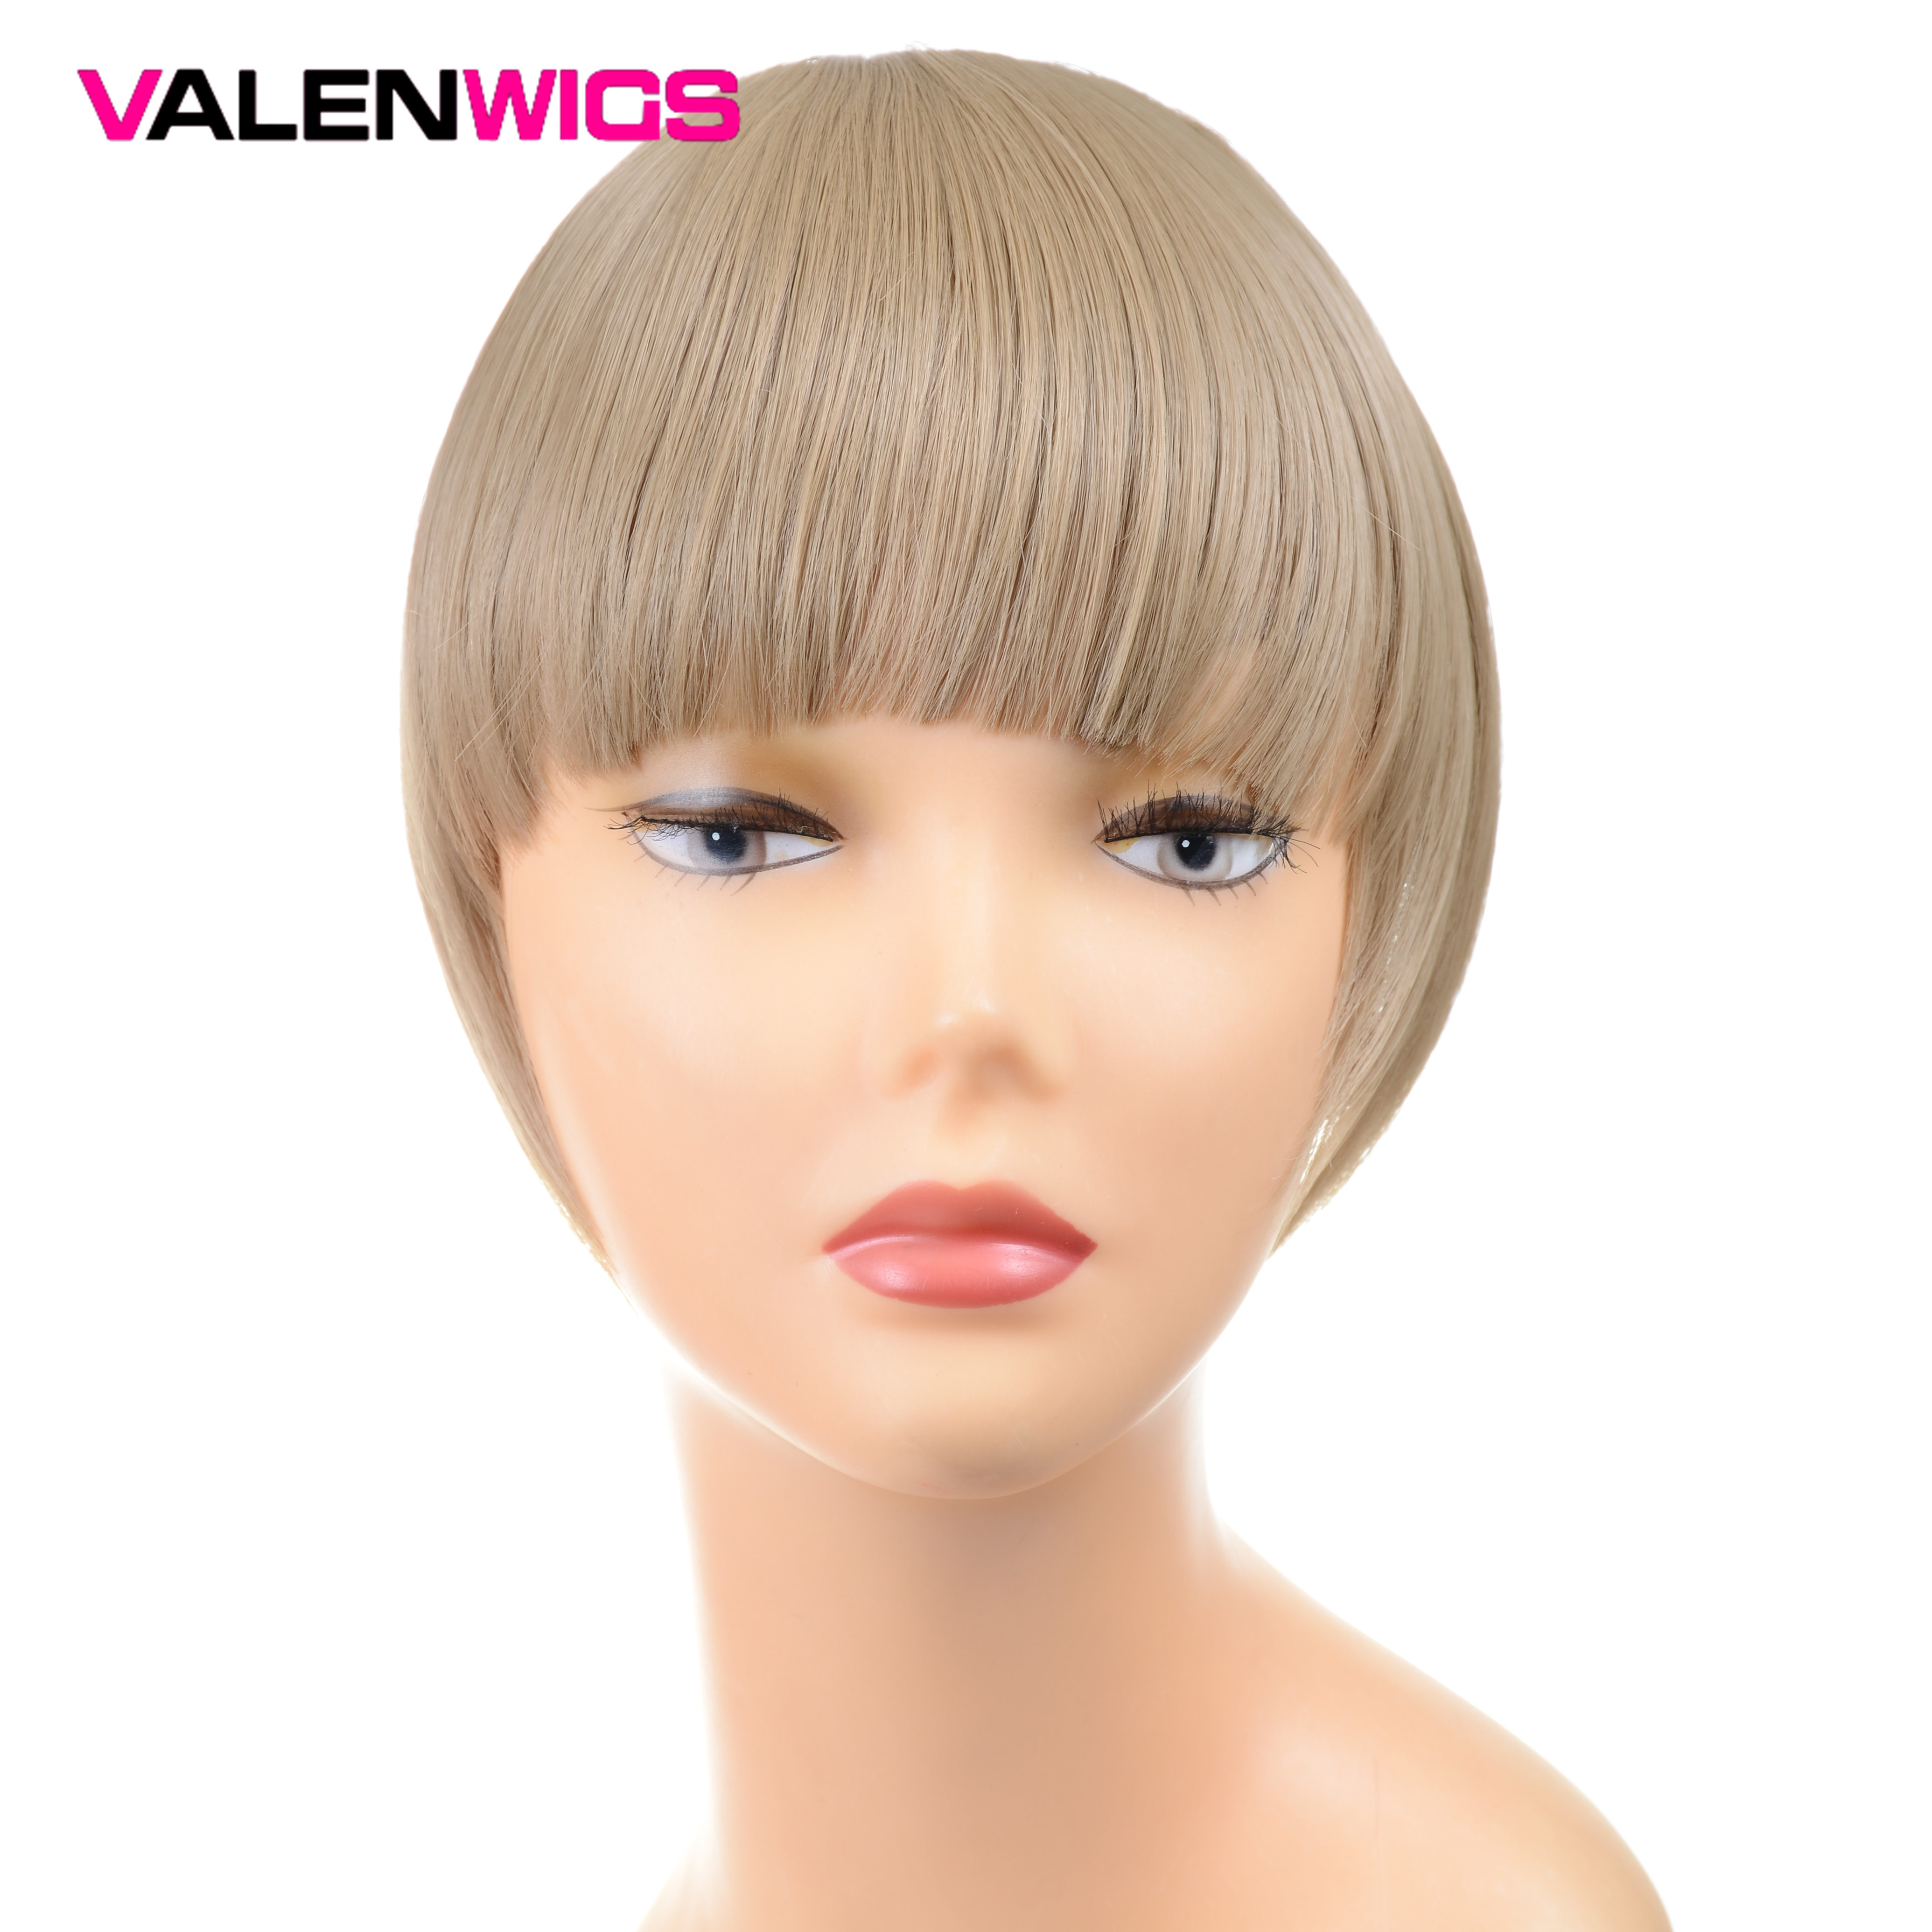 """ValentWigs 6"""" False Fringe Bangs Clip In Bangs One Piece Staight Synthetic Hair Extensions Front Neat Bangs Pure Color For Women"""